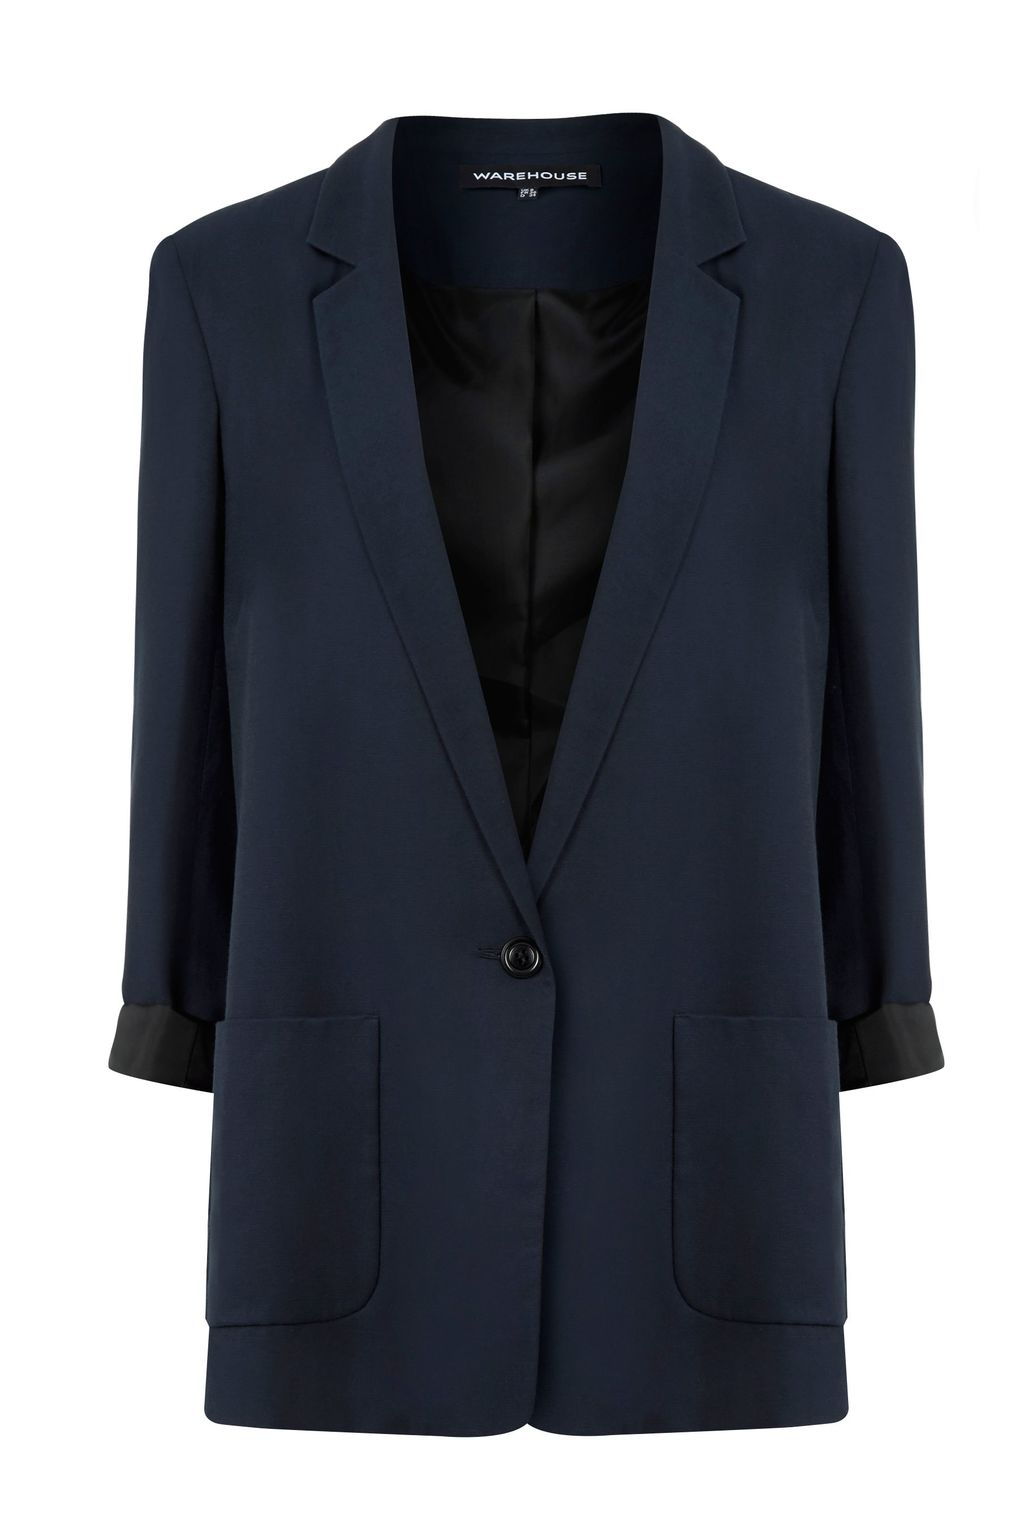 Soft Boyfriend Jacket, Navy - pattern: plain; style: single breasted blazer; length: below the bottom; collar: standard lapel/rever collar; predominant colour: navy; occasions: evening, creative work; fit: tailored/fitted; fibres: polyester/polyamide - 100%; sleeve length: 3/4 length; sleeve style: standard; texture group: crepes; collar break: low/open; pattern type: fabric; season: s/s 2016; wardrobe: highlight; embellishment location: hip